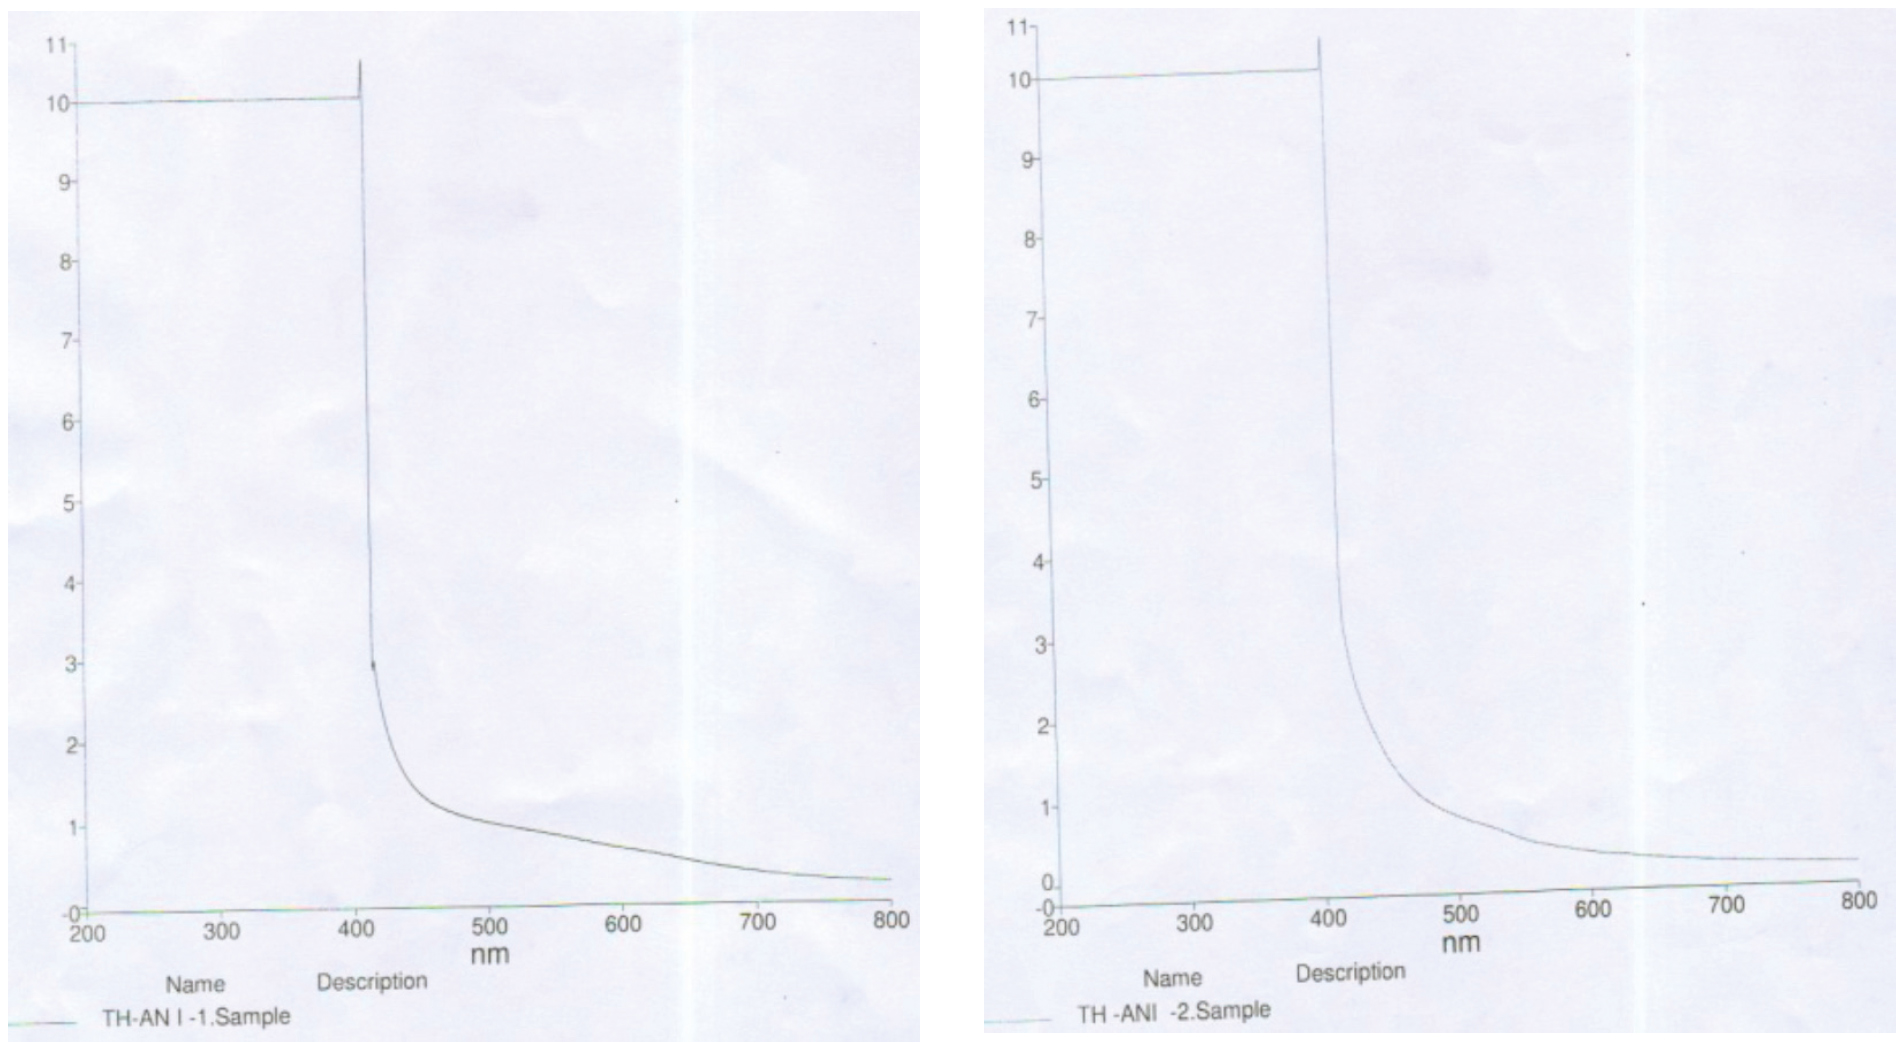 Fig. 4: UV–Visible spectroscopic characterization of electrocoated copolymer powder of poly-thio-co-aniline (4a) and poly-thioco- o-toluidine (4b)